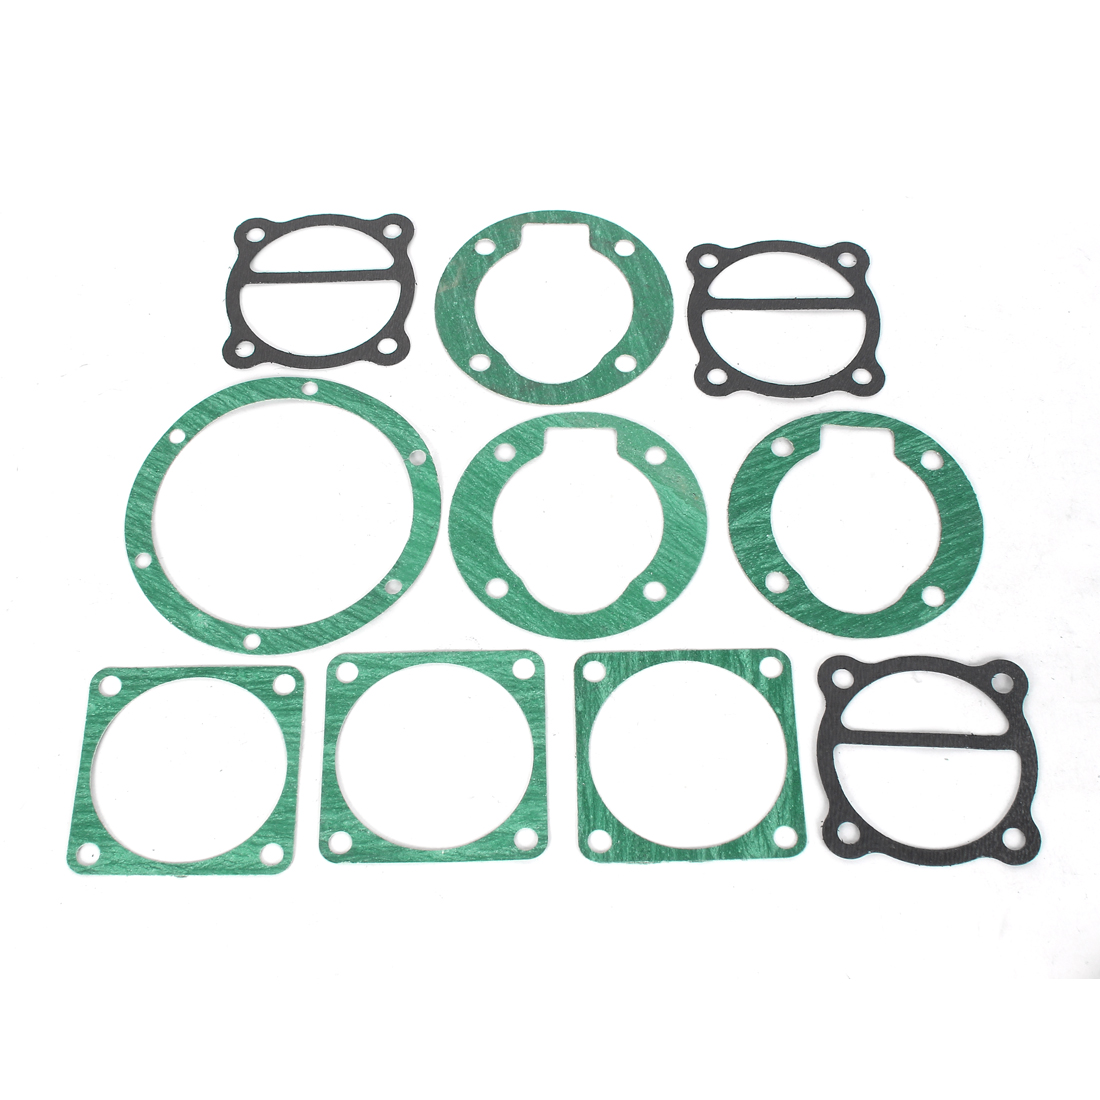 10 in 1 Air Compressor Cylinder Head Base Valve Plate Sealing Gaskets